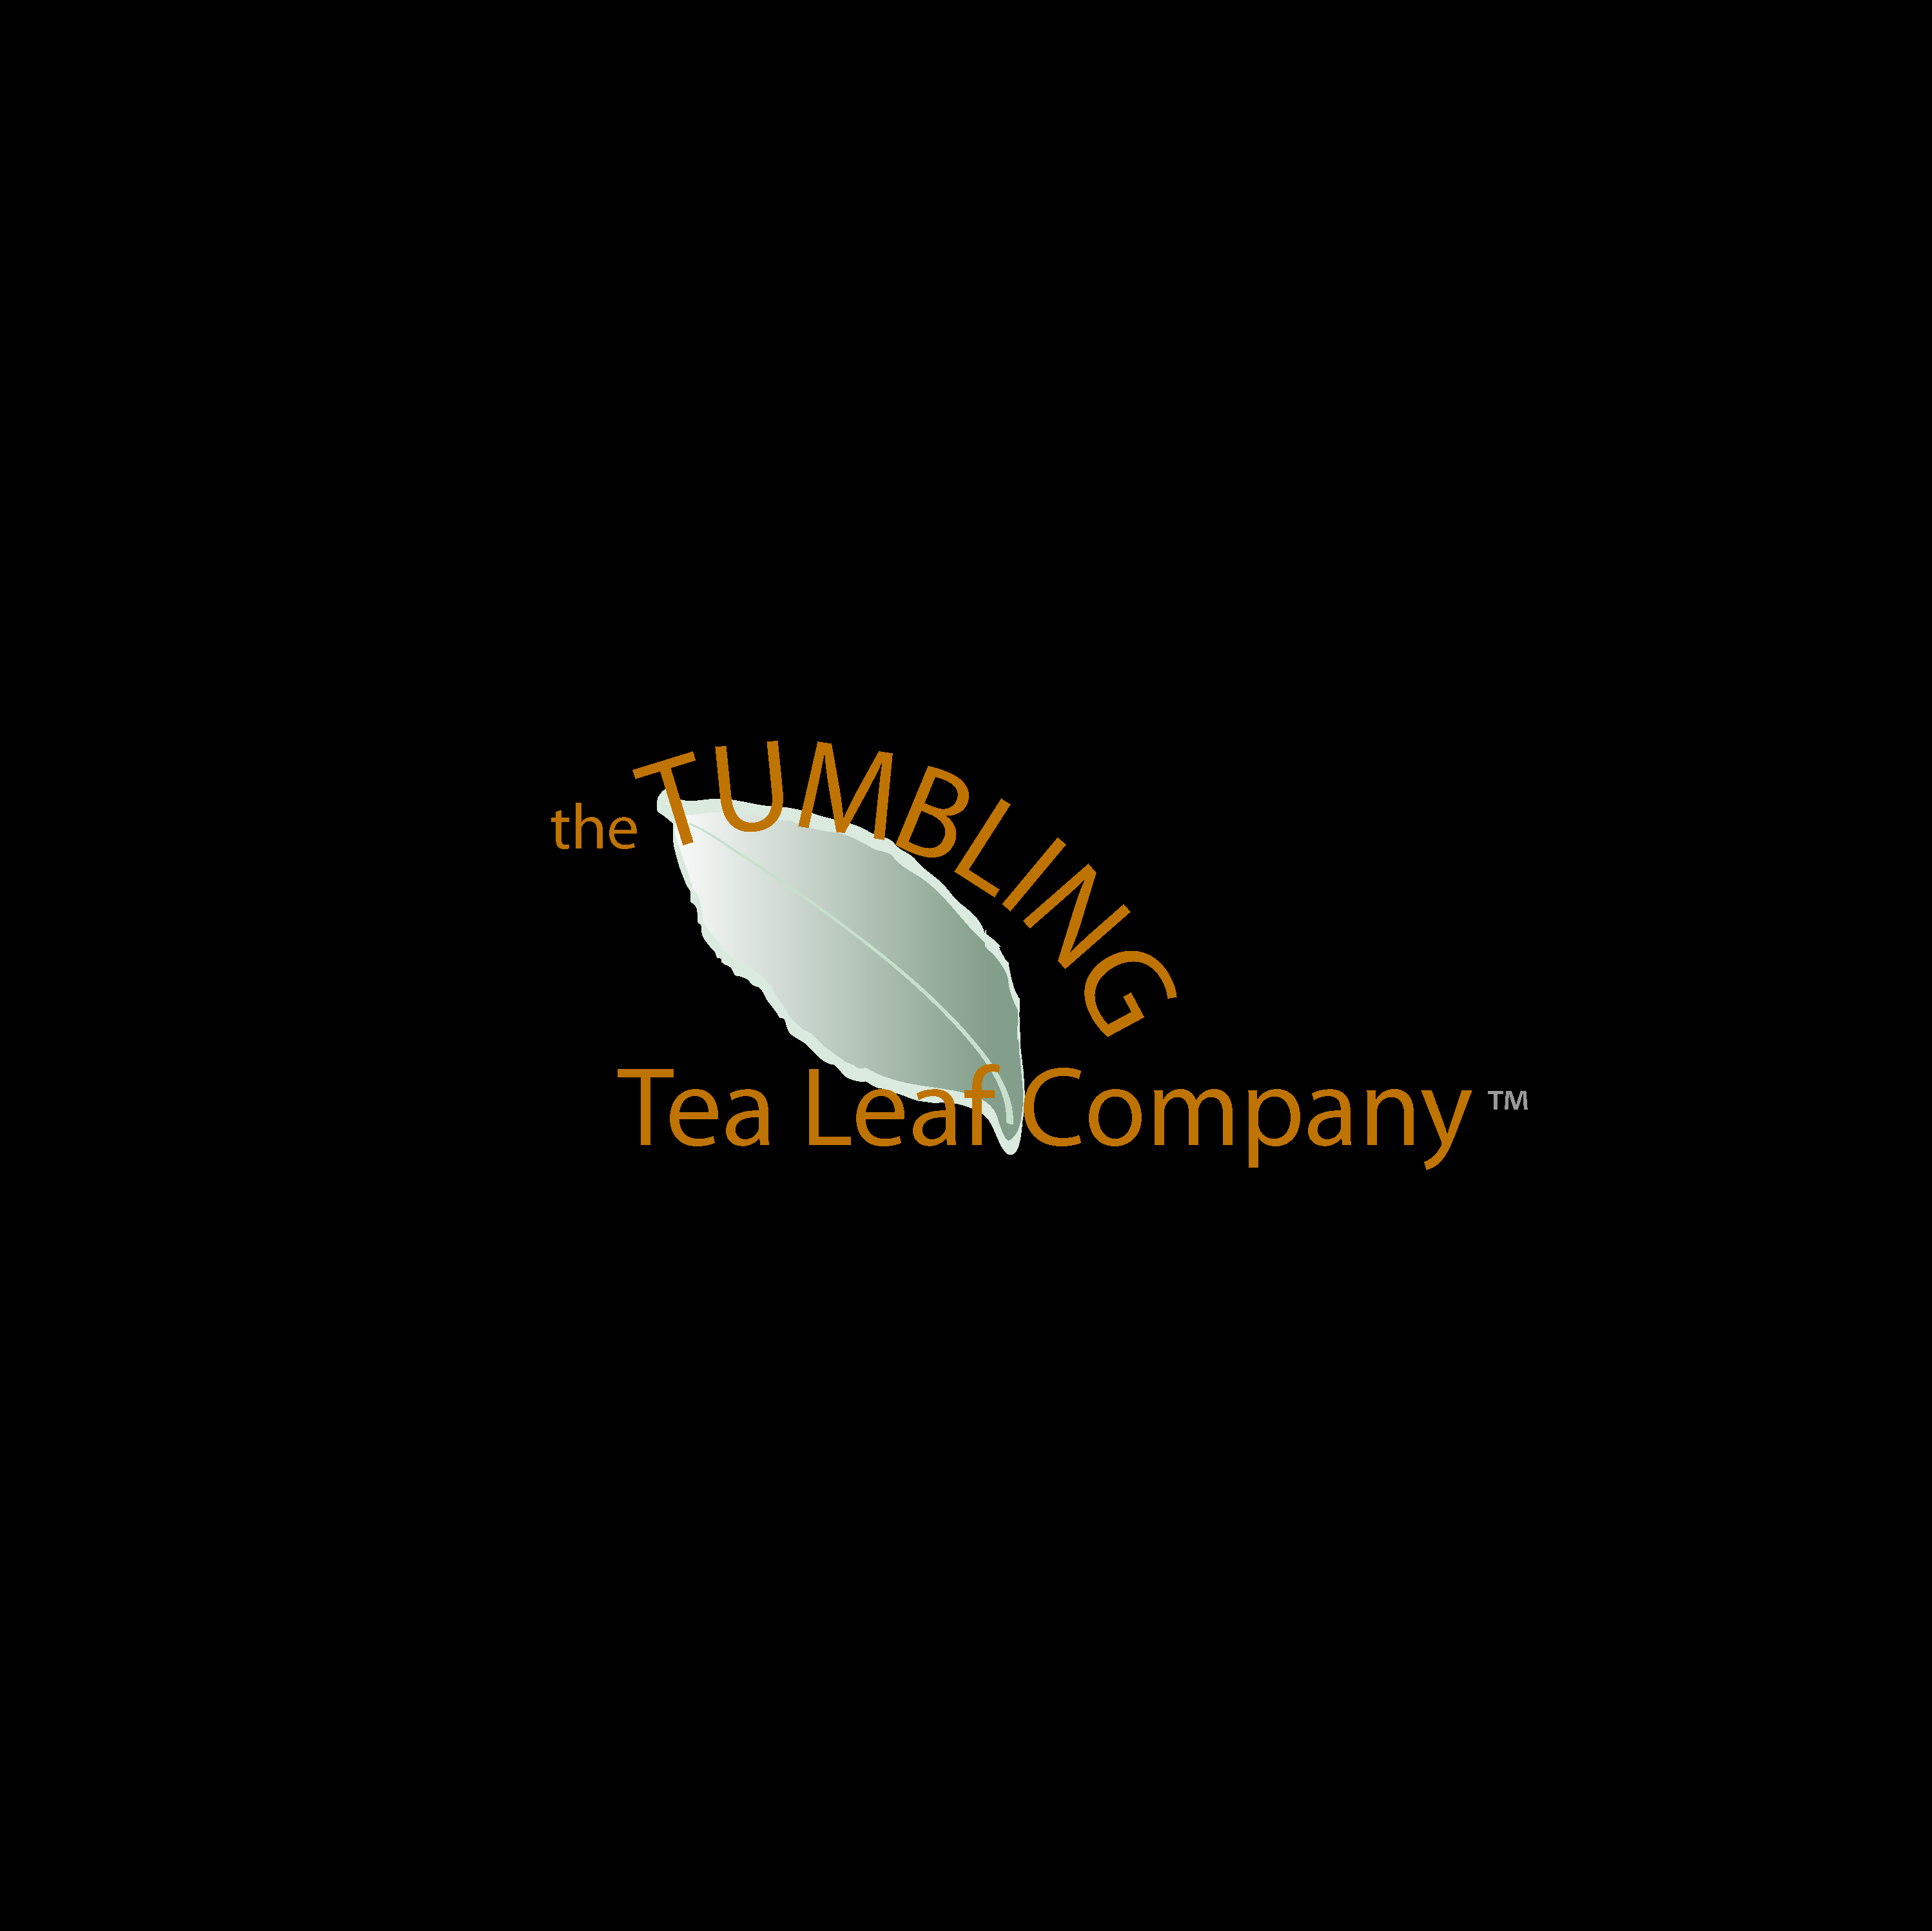 Logo Design by Nancy Grant - Entry No. 19 in the Logo Design Contest Creative Logo Design for The Tumbling Tea Leaf Company.